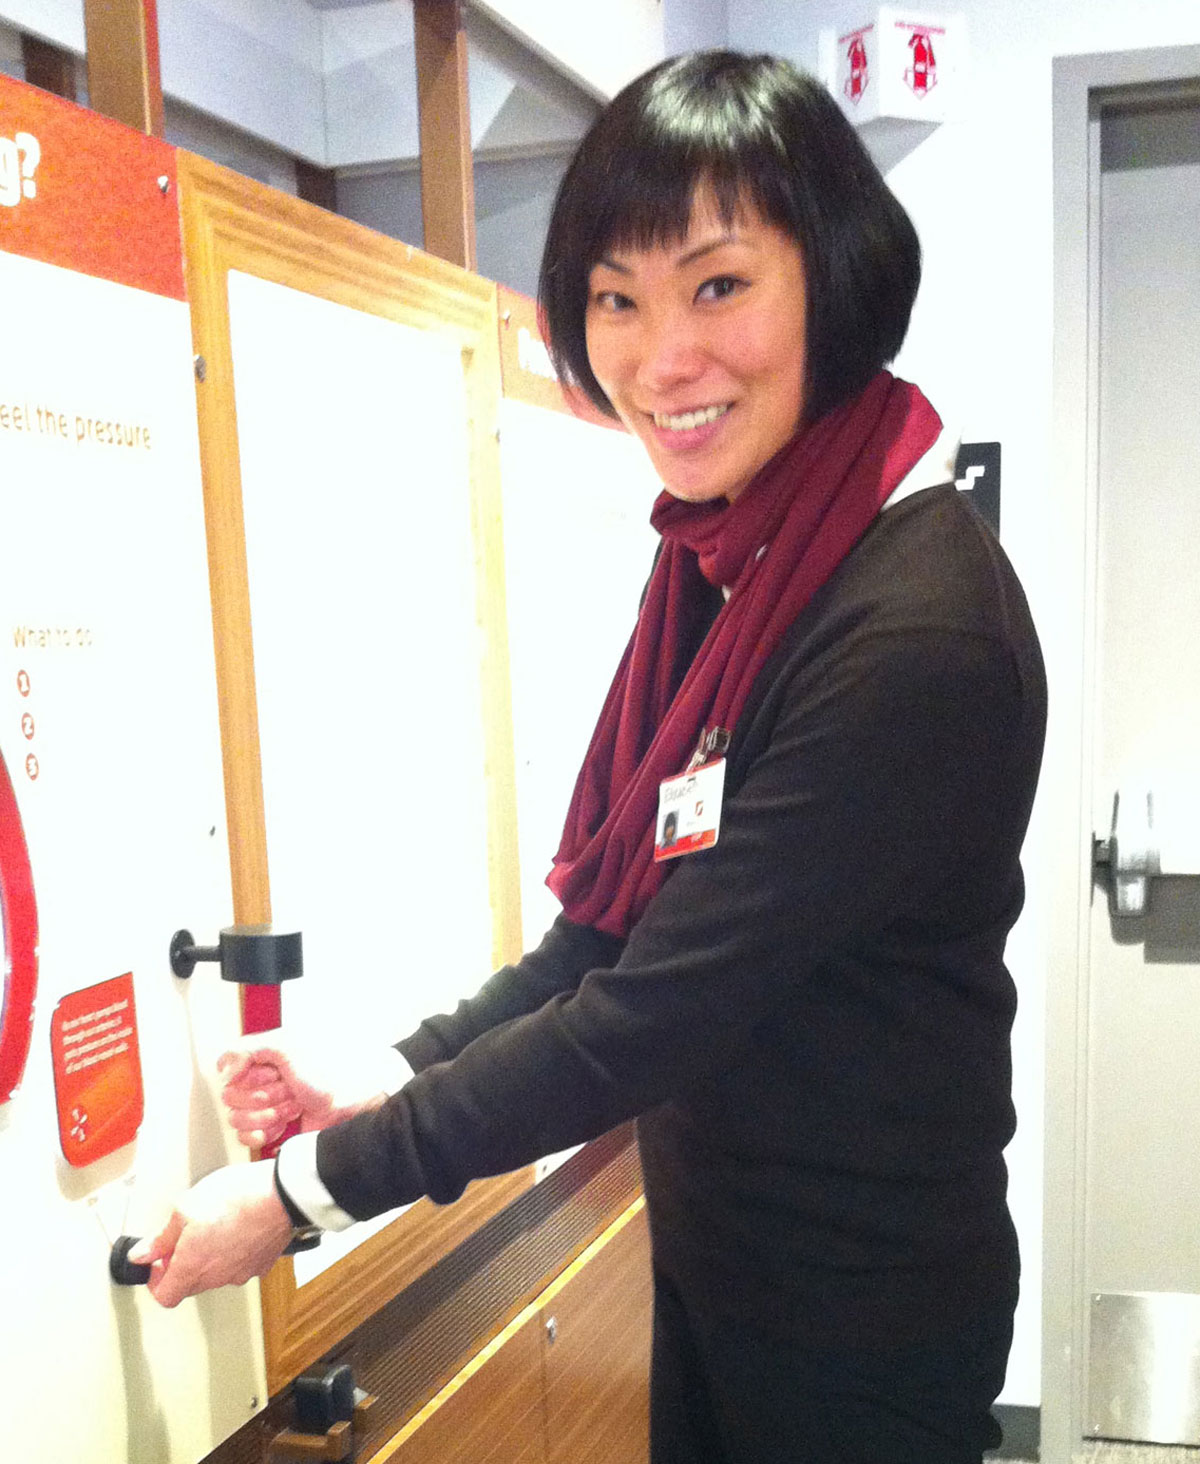 Exhibit Manager Elizabeth Kong at Hypertension Station